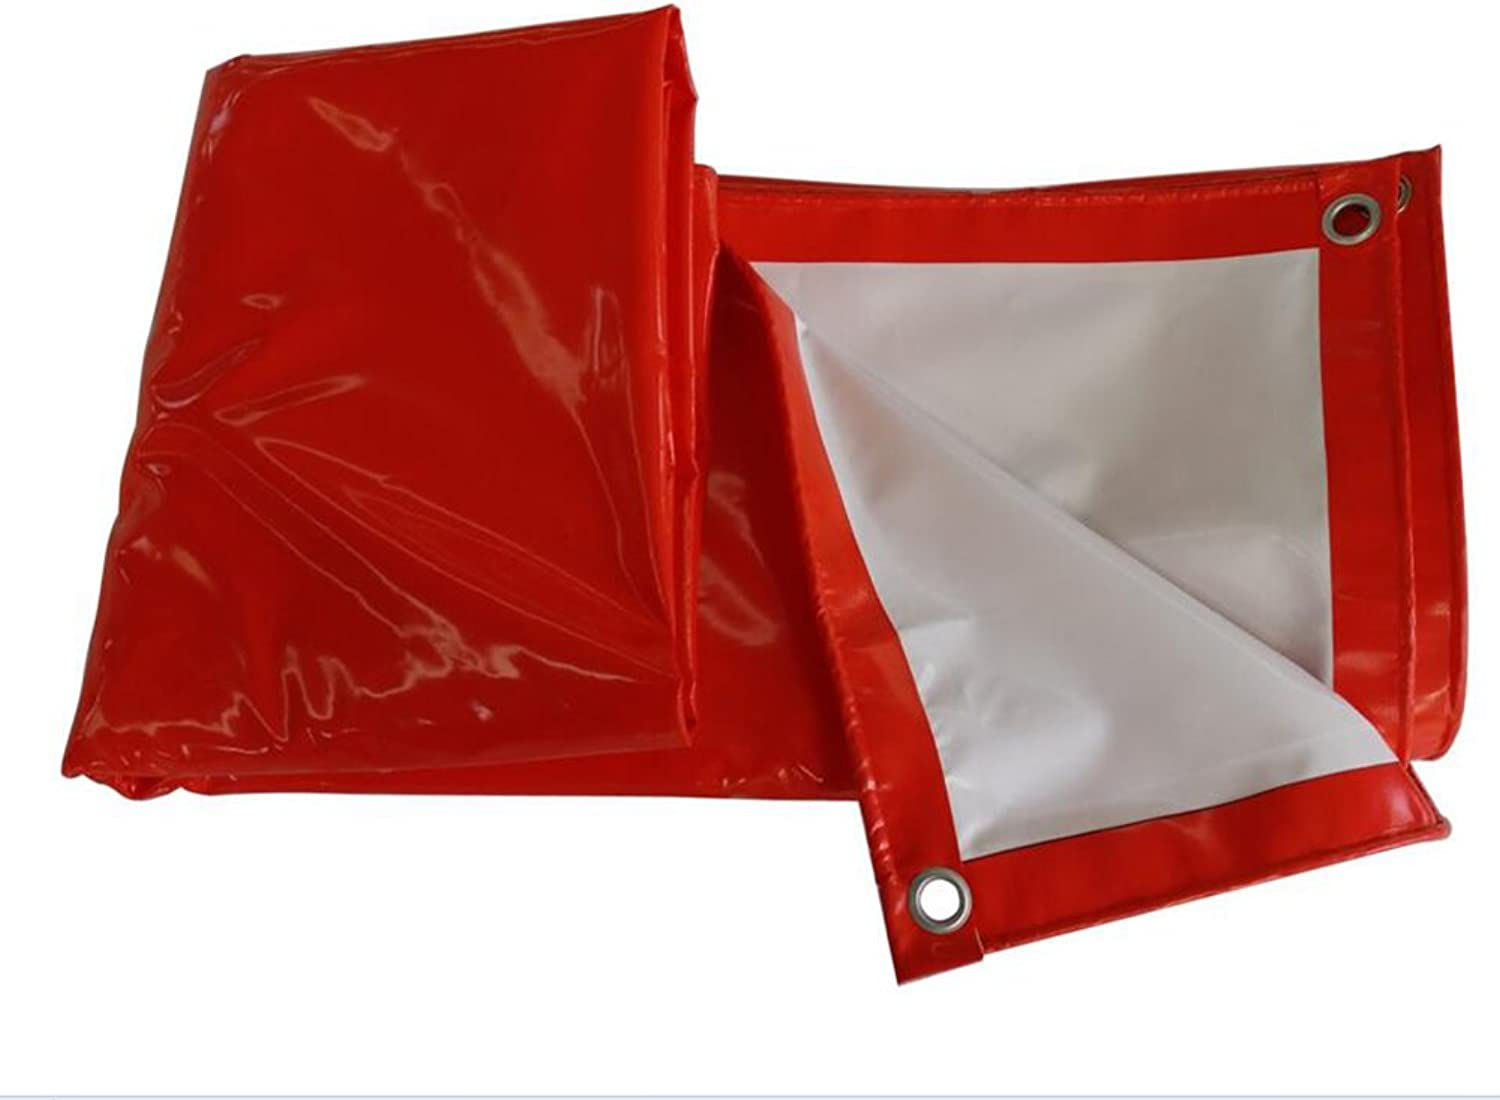 Red and White Twocolor rain Cloth Sun Predection Windproof Tarpaulin Cover Cloth Tarpaulin 520g Shade Tarpaulin PVC Coated Plastic Cloth Outdoor Shade Cloth (color   Red, Size   34m)